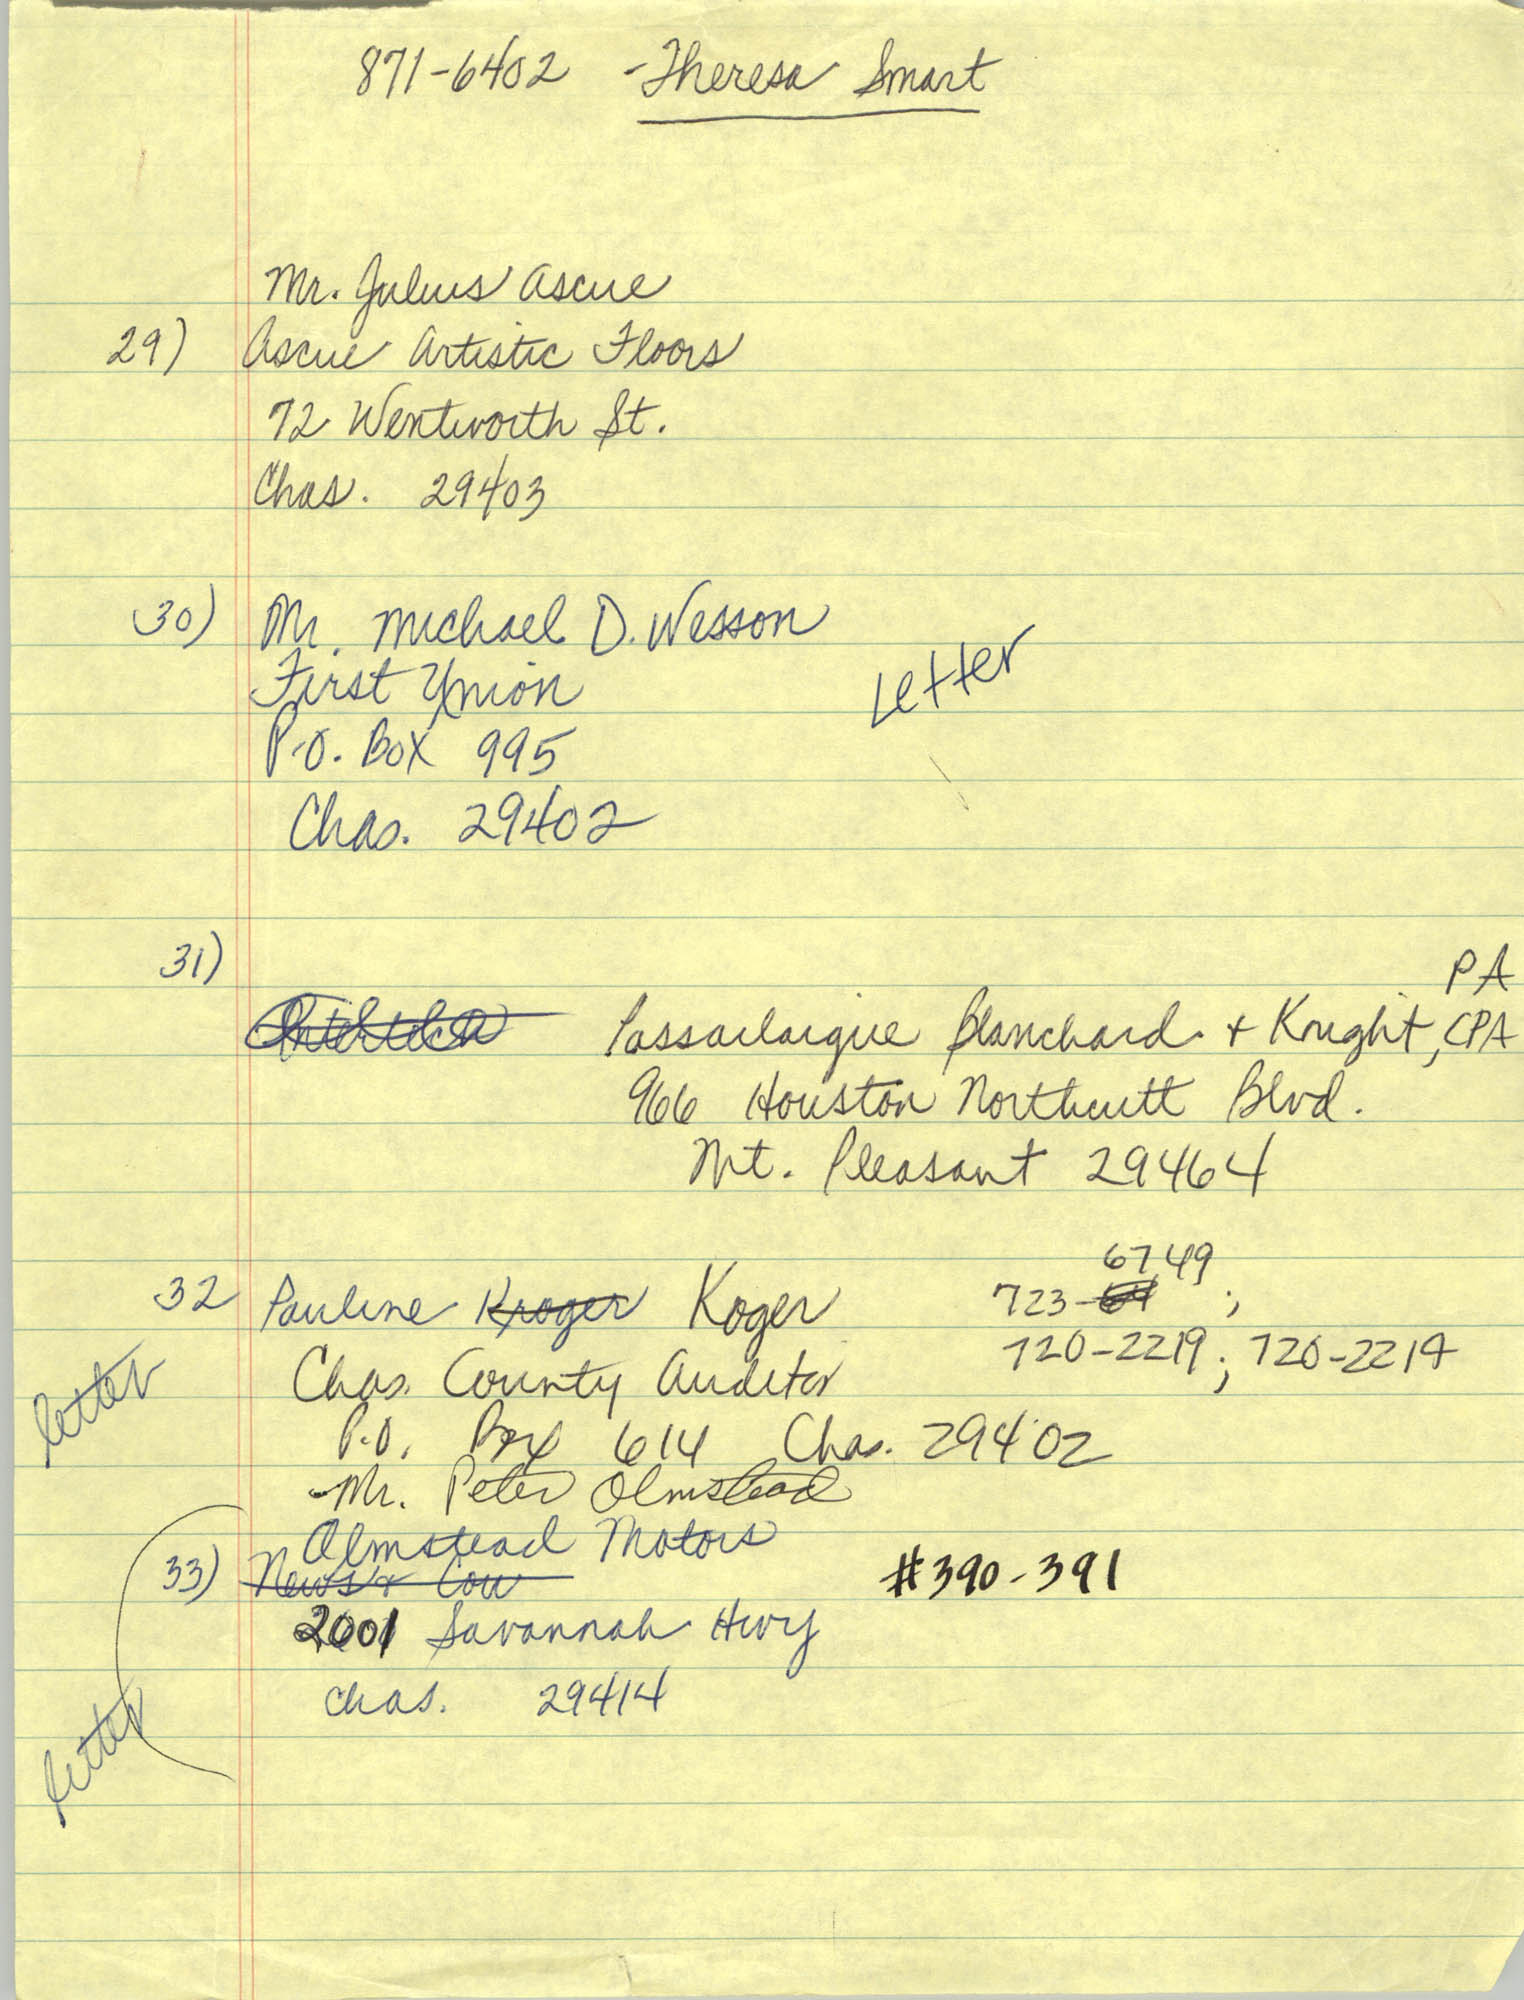 Handwritten Addresses for Tickets, Page 13